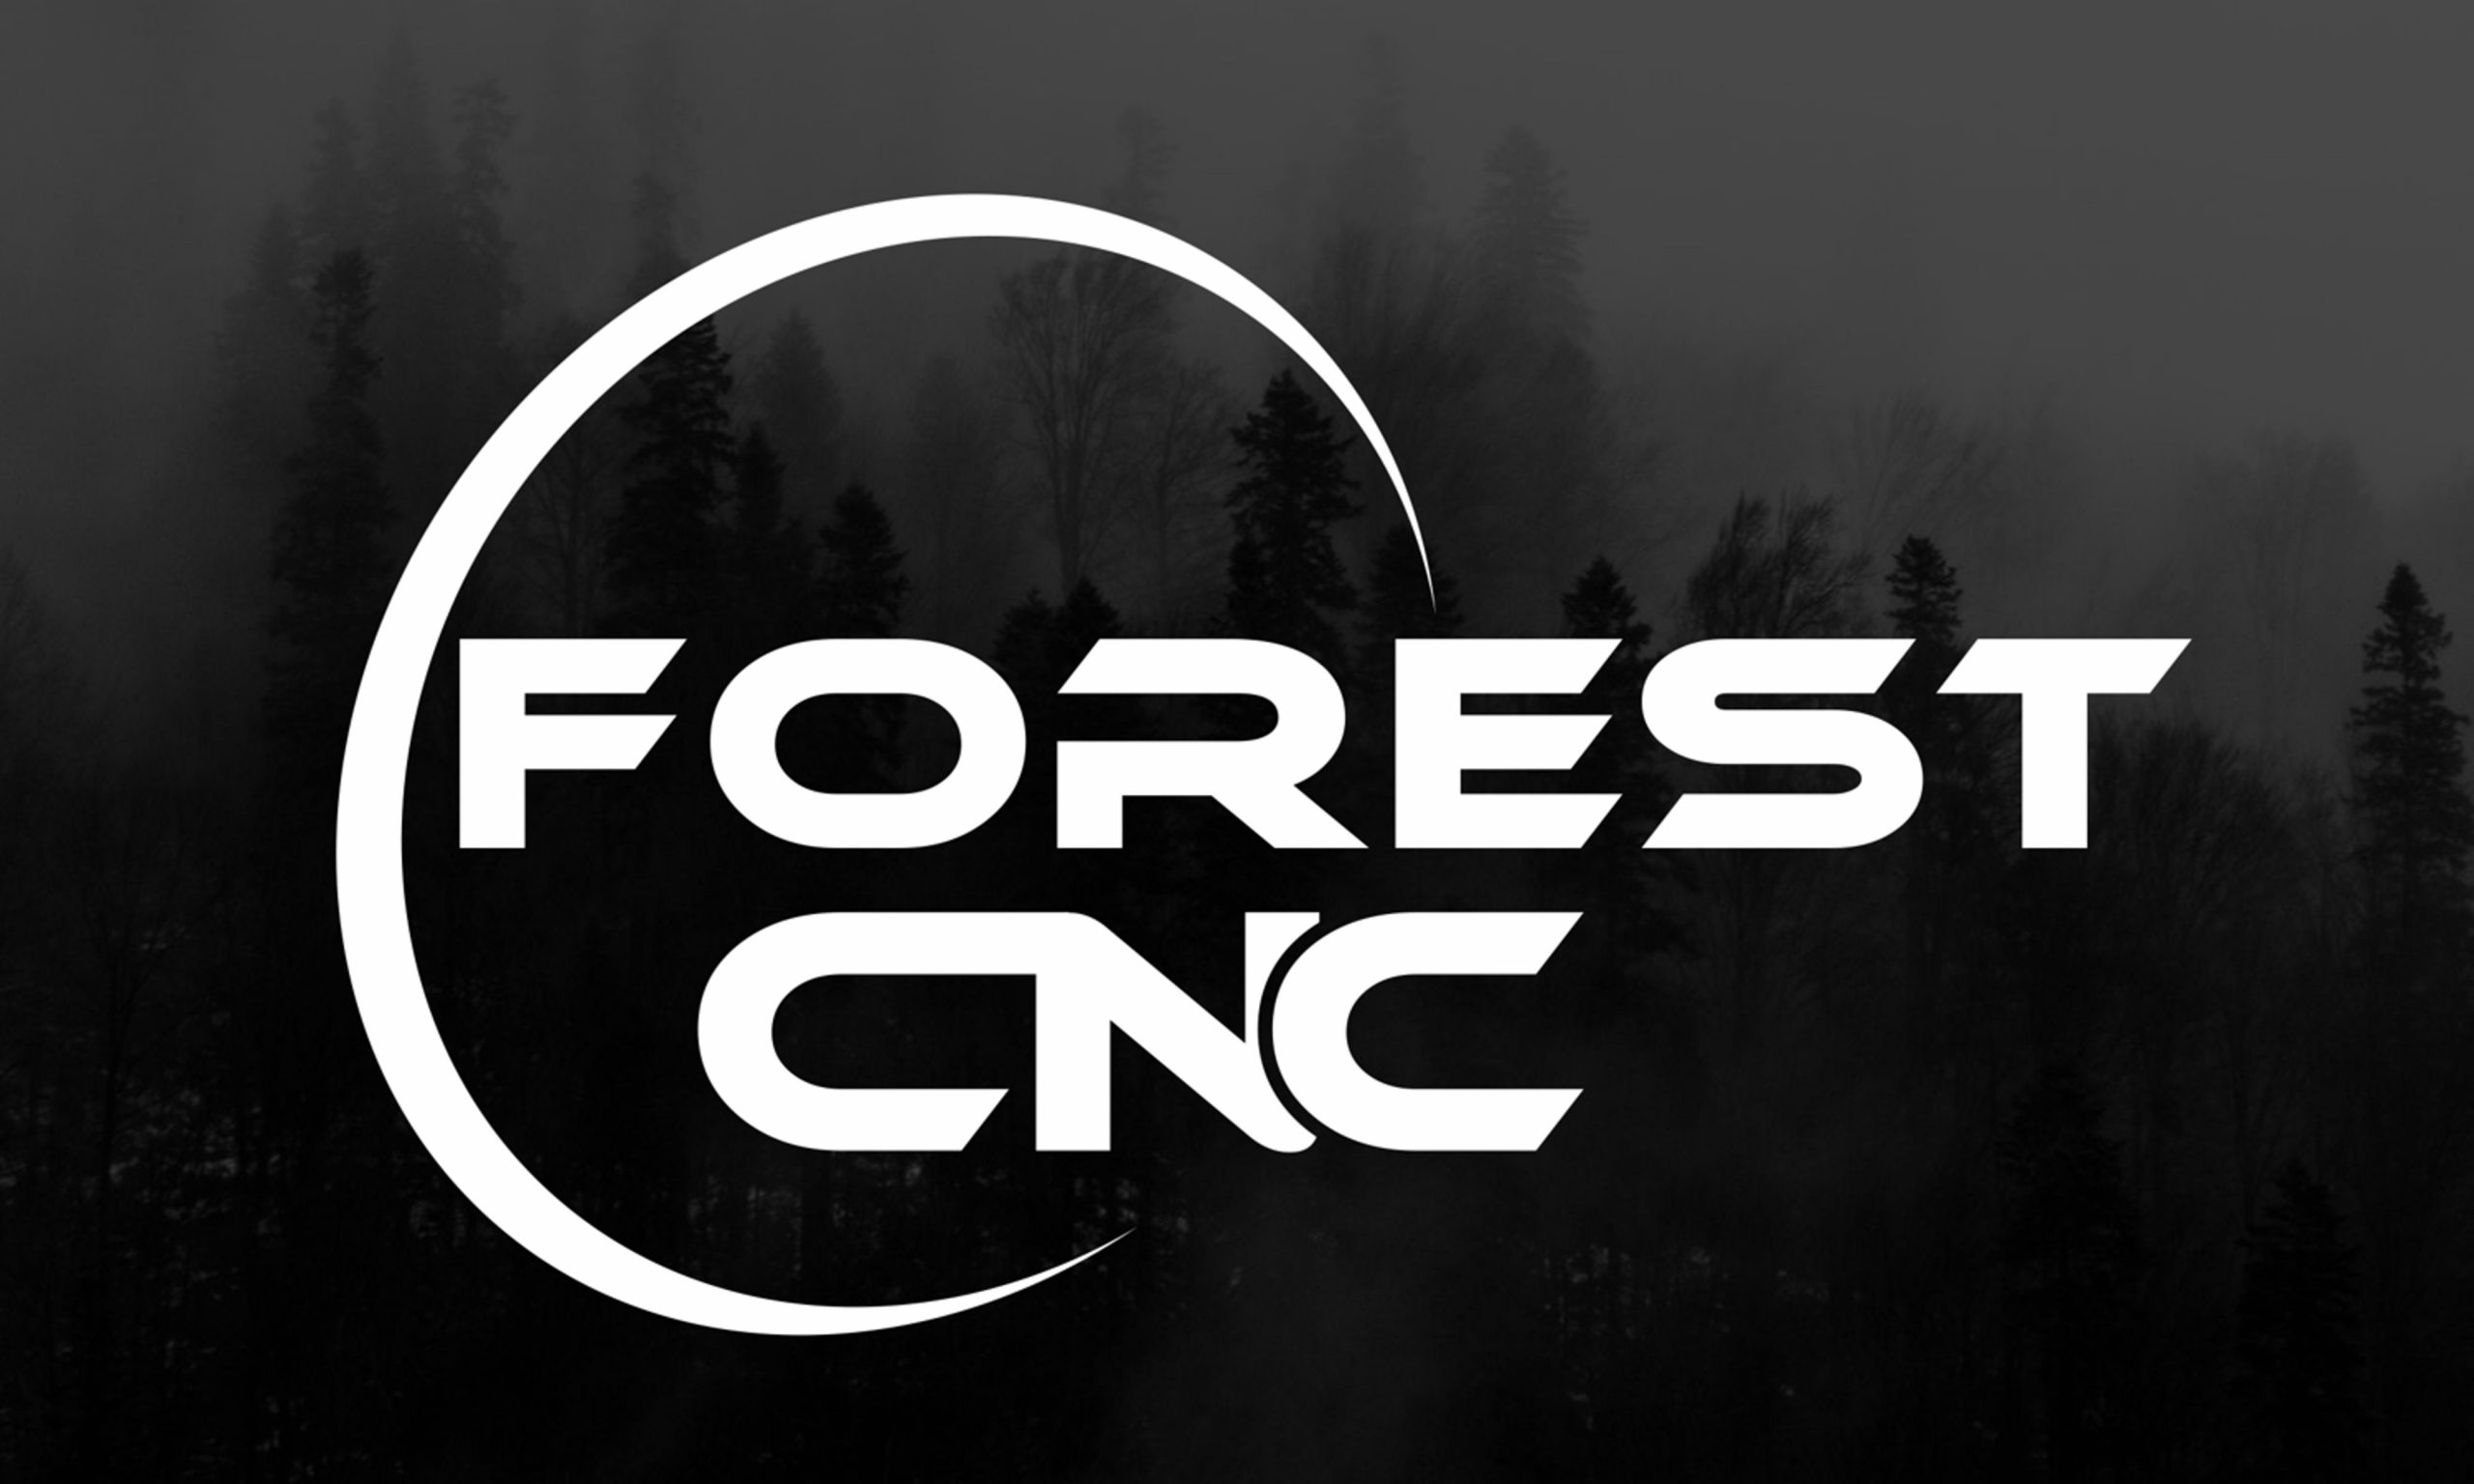 Forest CNC